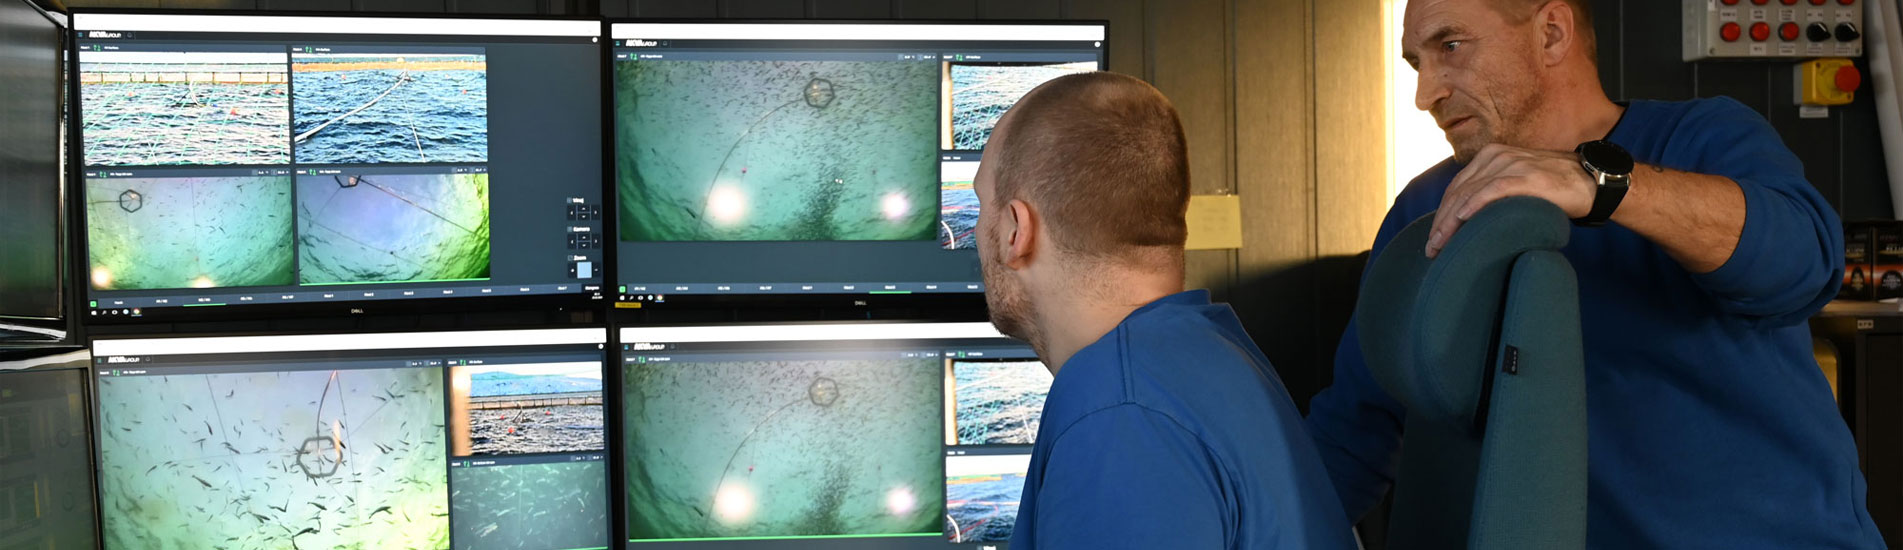 FULL CONTROL: Fish farmer Lars André Johnsen (left) and Operating Manager Michael Olsen studies the video images of fish being fed through the control system AKVAconnect 4.1.